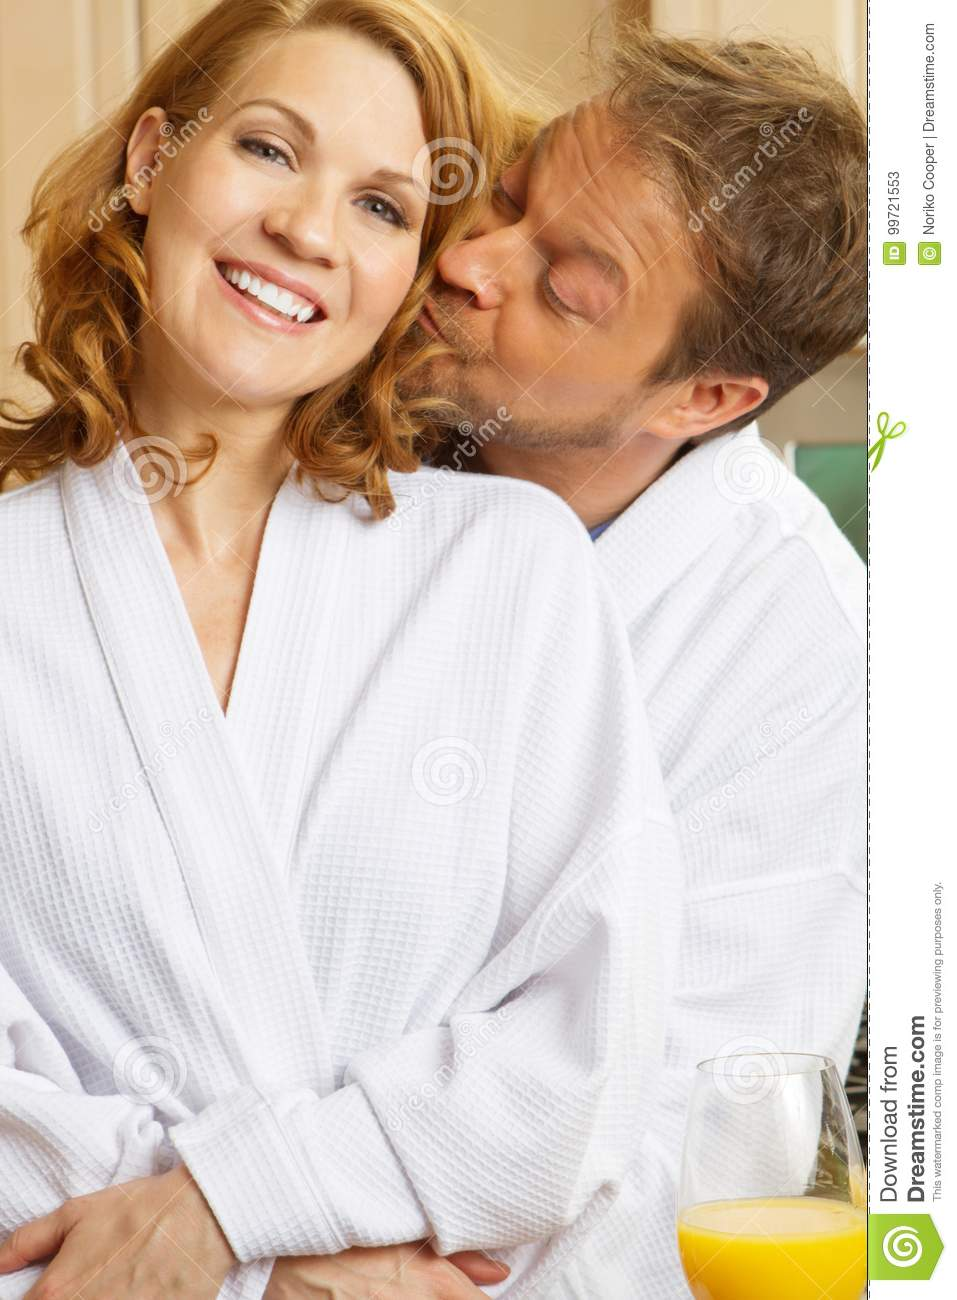 Cute Couple In Bath Robes Stock Image Image Of Family 99721553